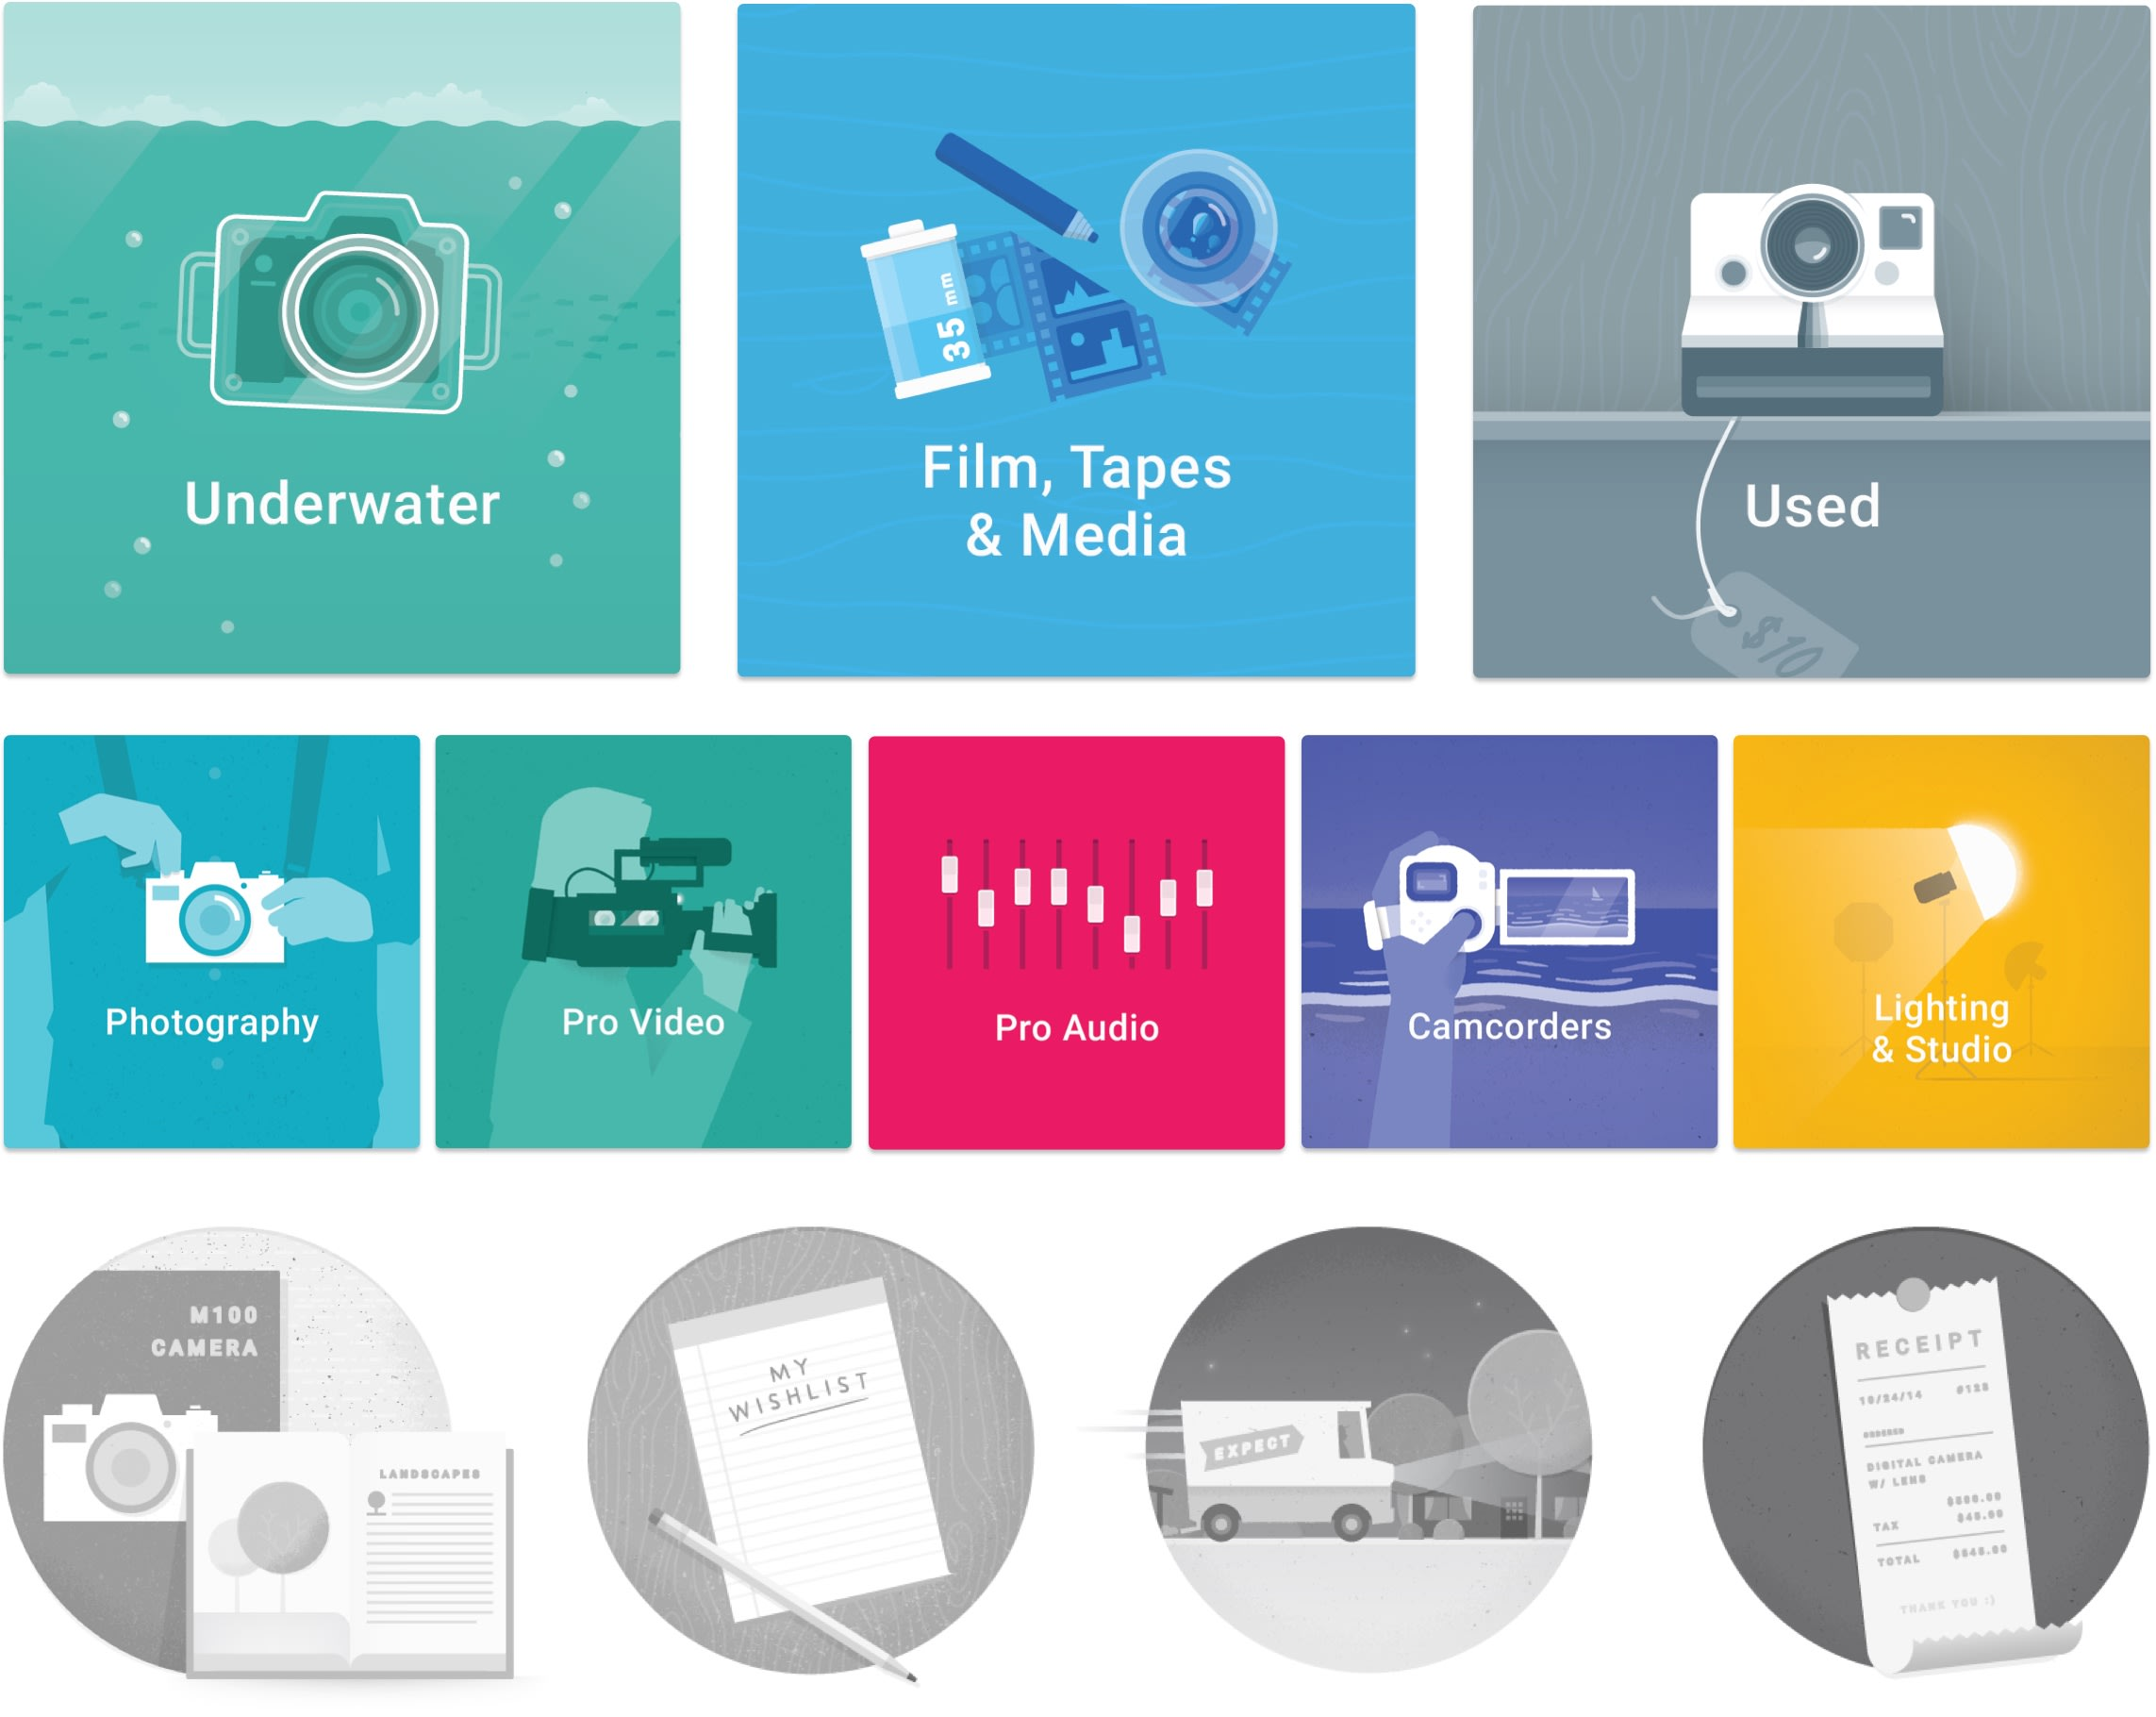 B&H Photo Material Design Illustrations and Icons